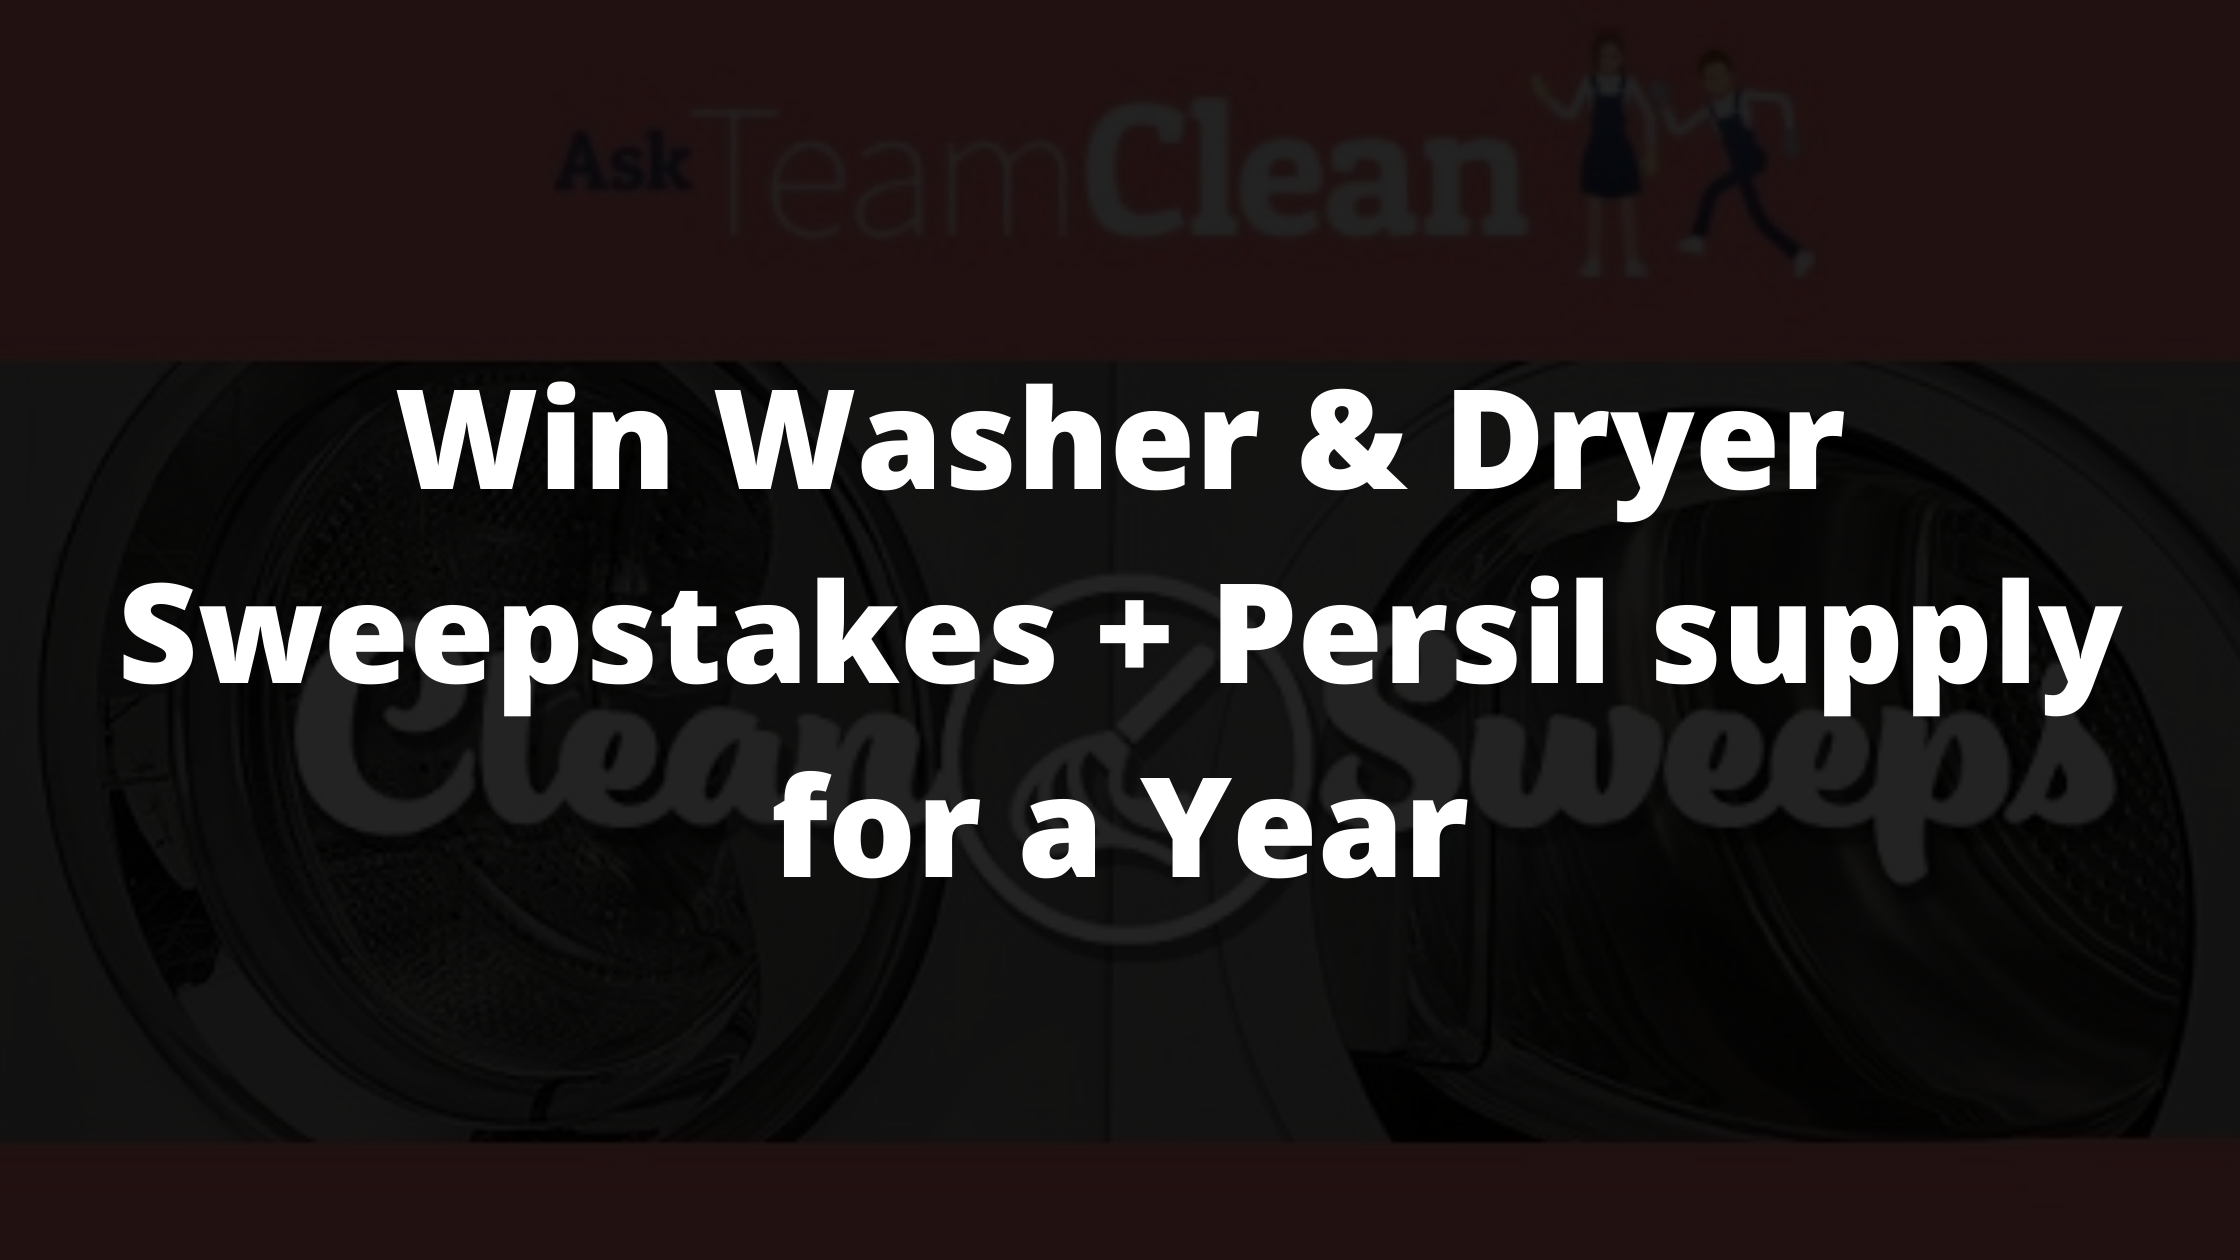 Washer & Dryer Sweepstakes